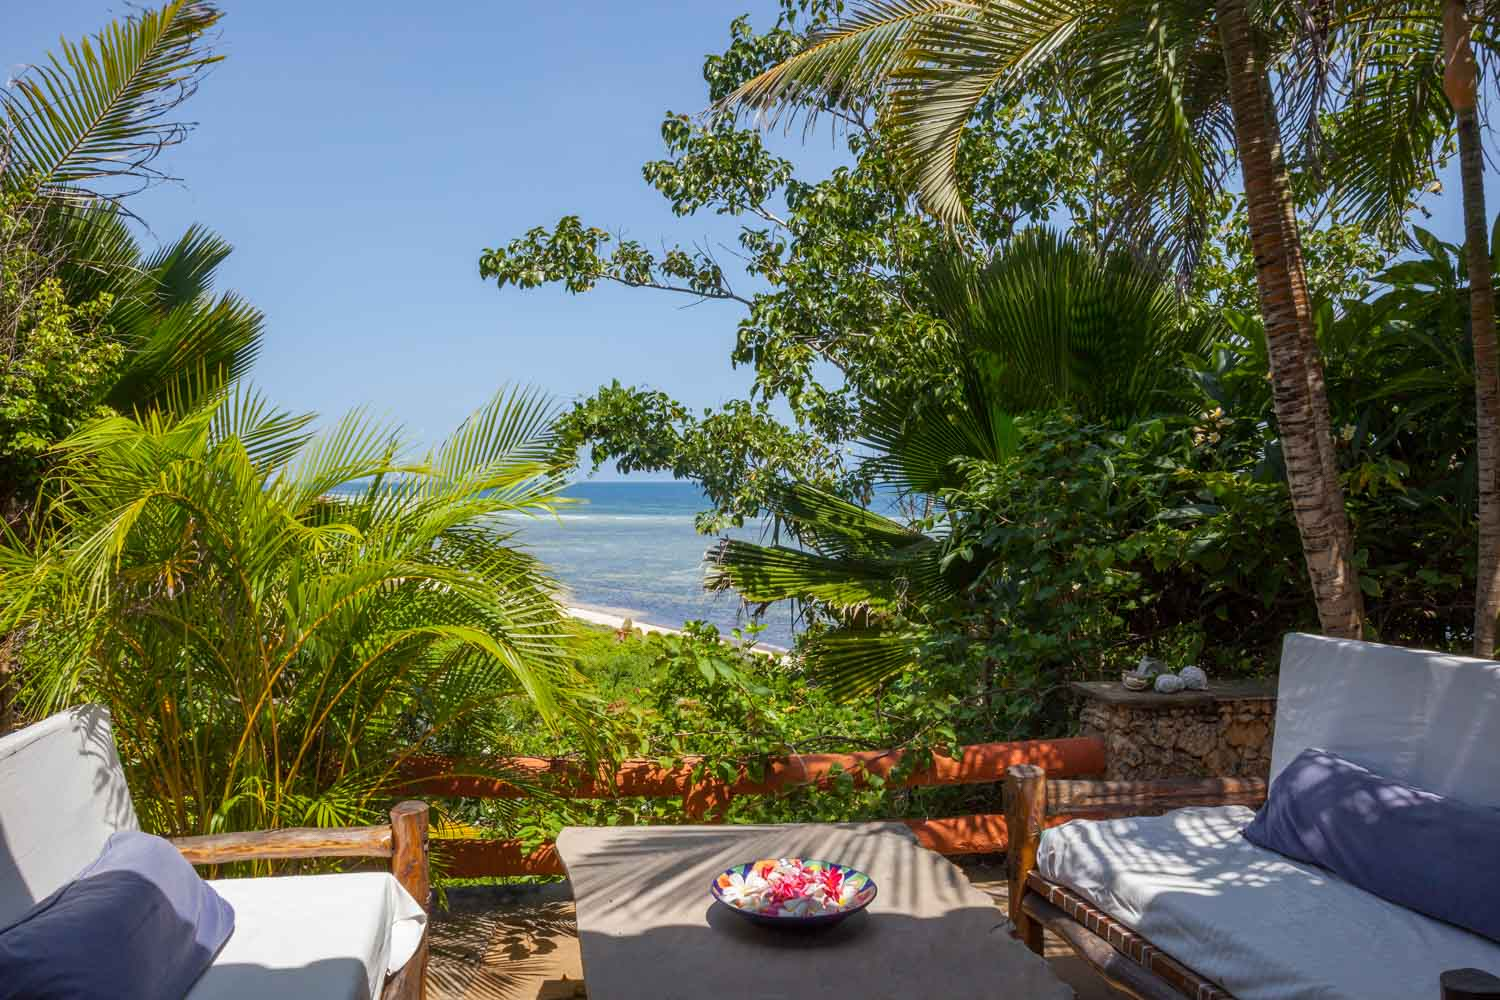 Red House - BeachSleeps 6 adults + 4 kidsKES 26,000 to 30,000 per day